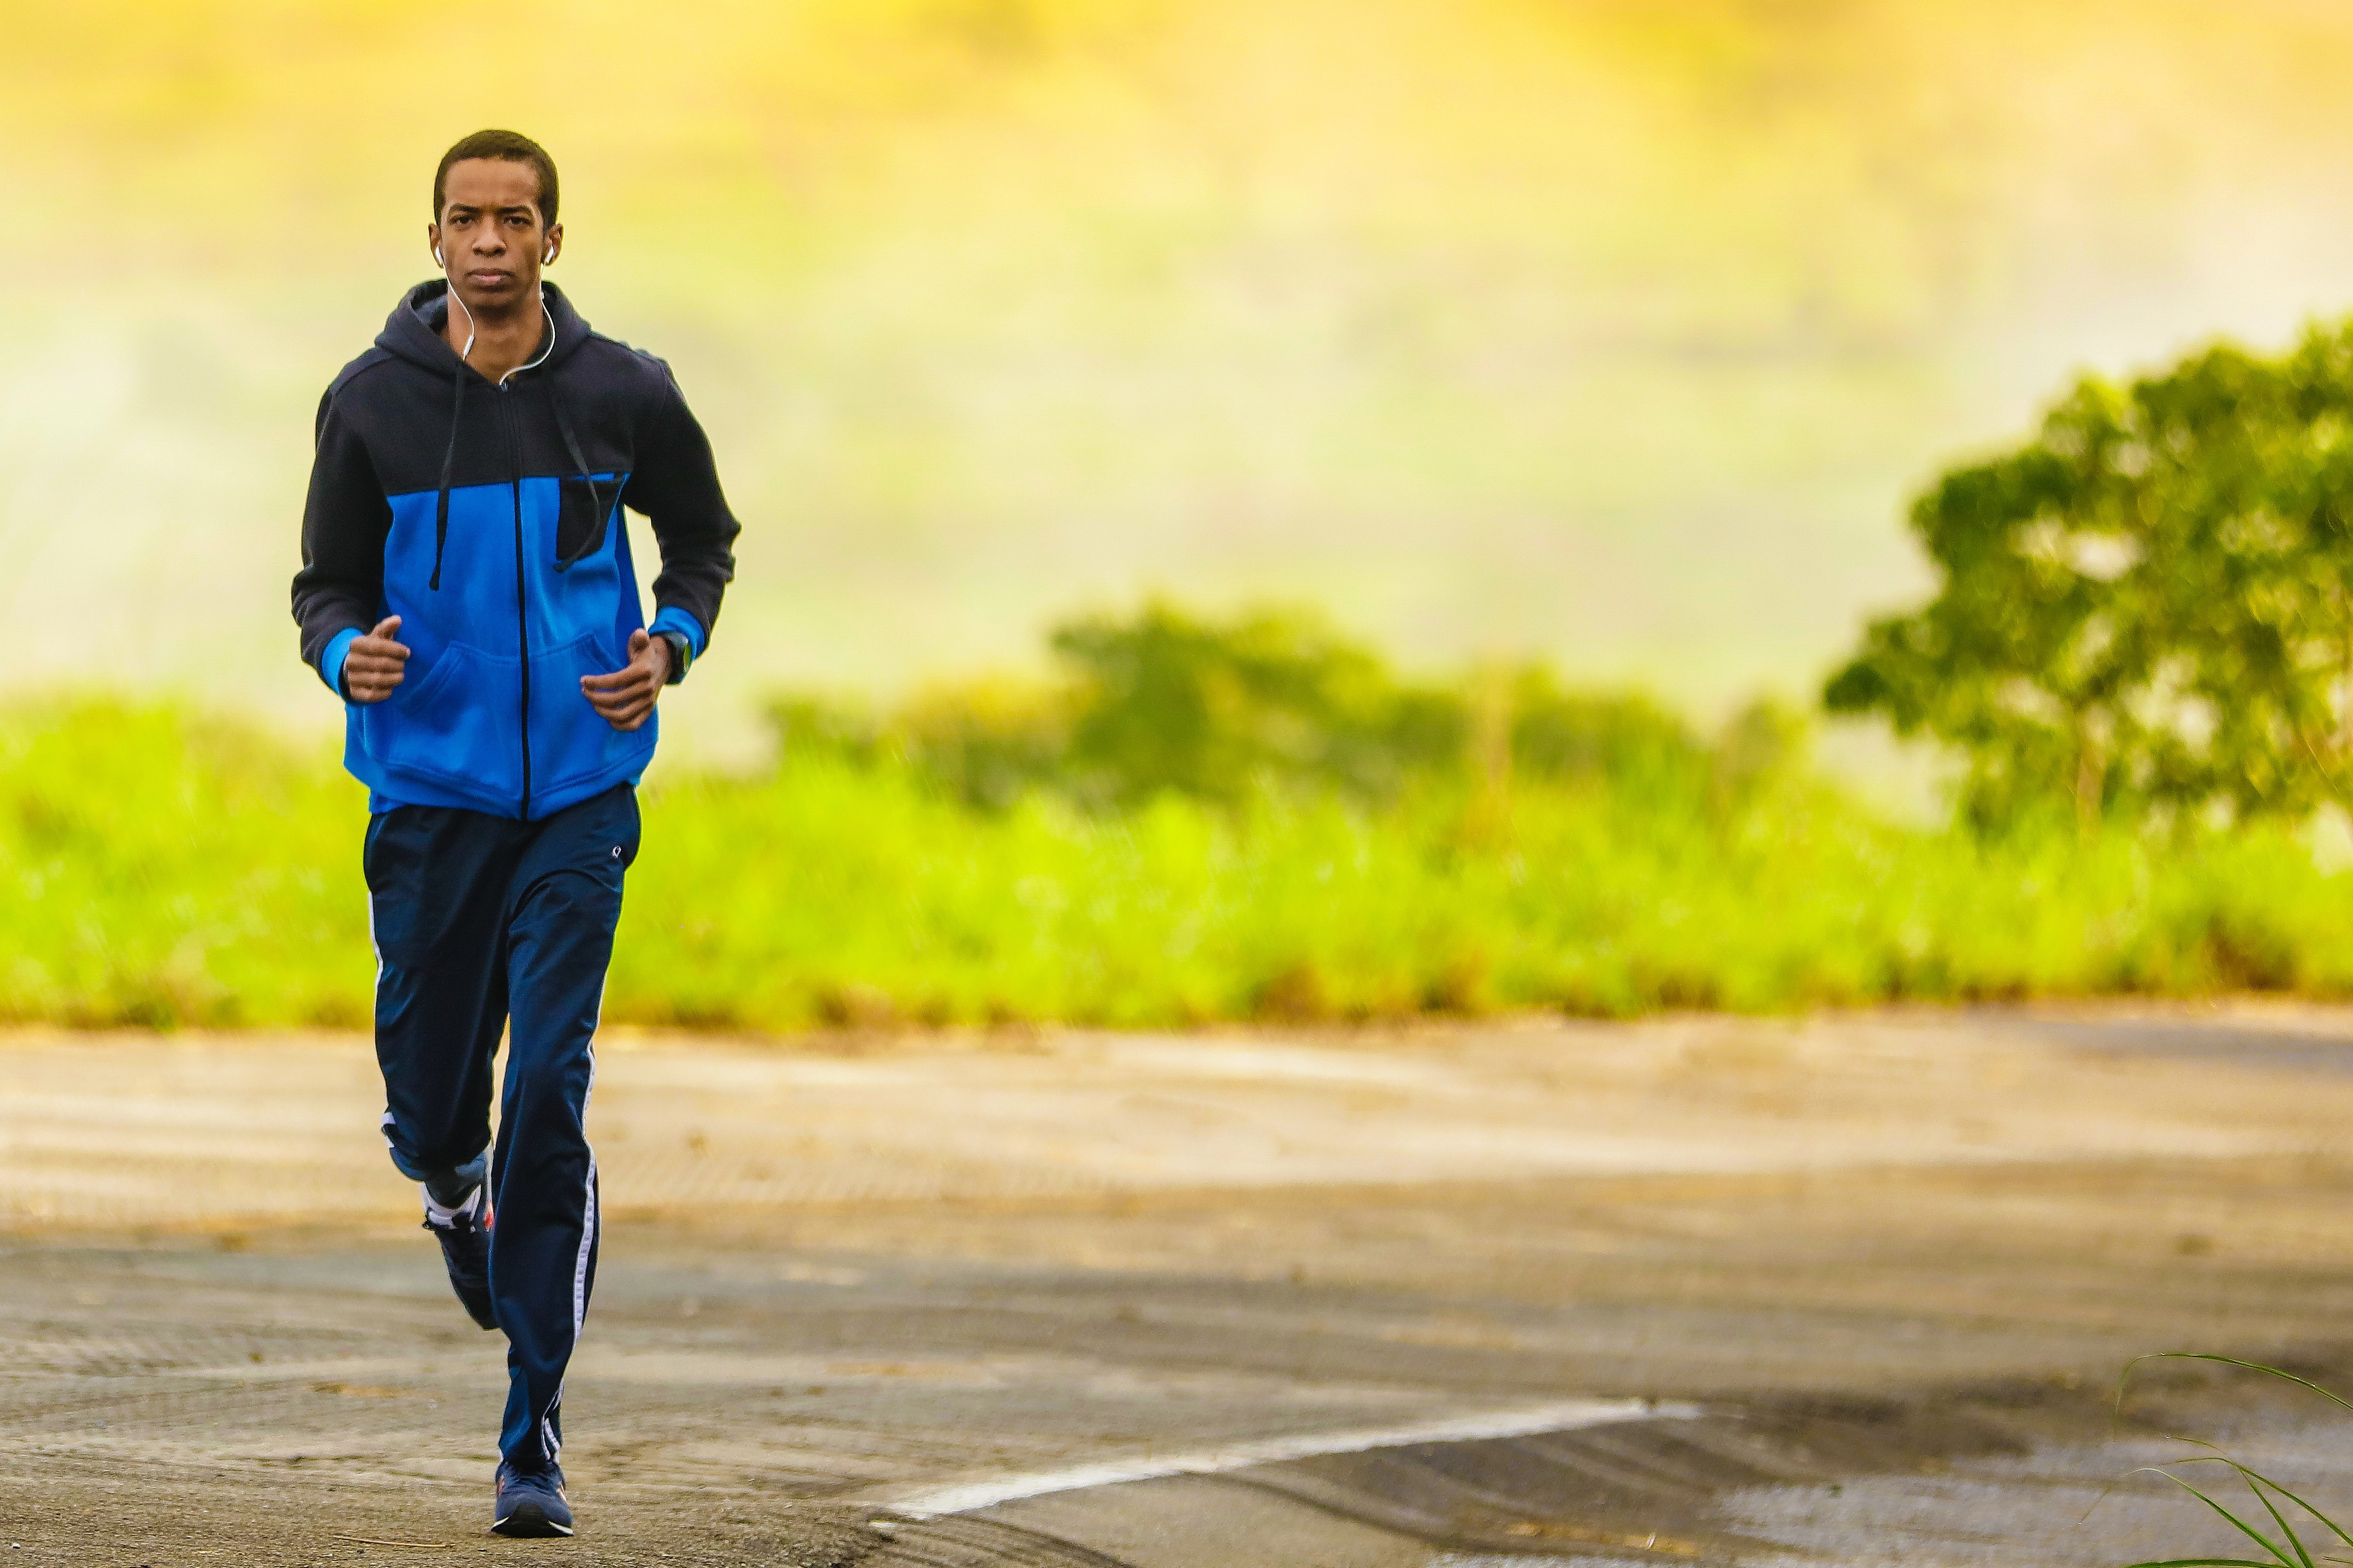 The impact of music on athletes. Guy running with headphones on